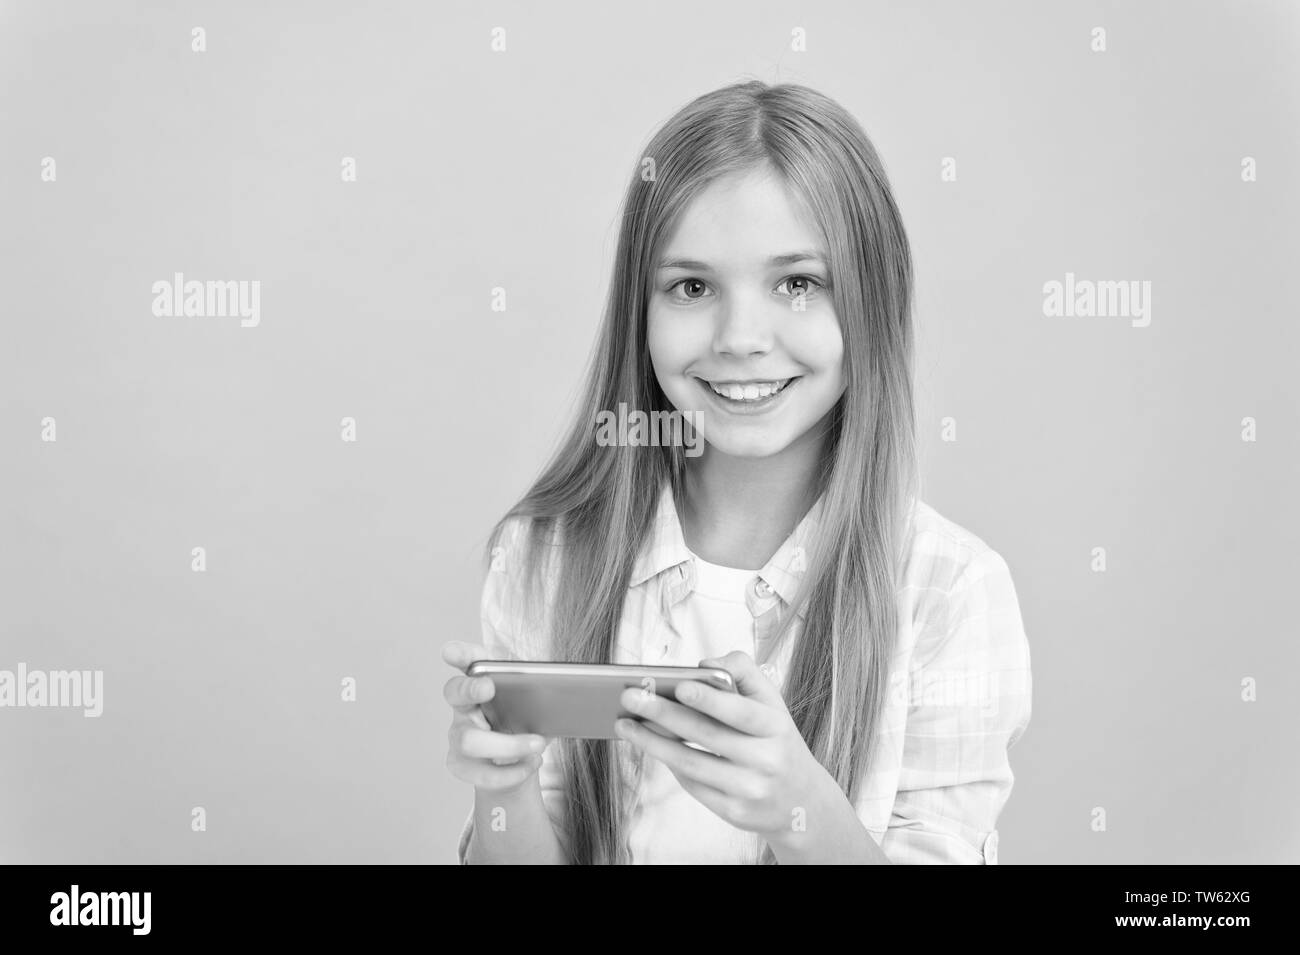 Problem of youth. Mobile phone and internet addiction. Addicted to internet online games. Mobile gadget dependence. Girl small child smiling hold smartphone. Internet surfing and social networks. - Stock Image